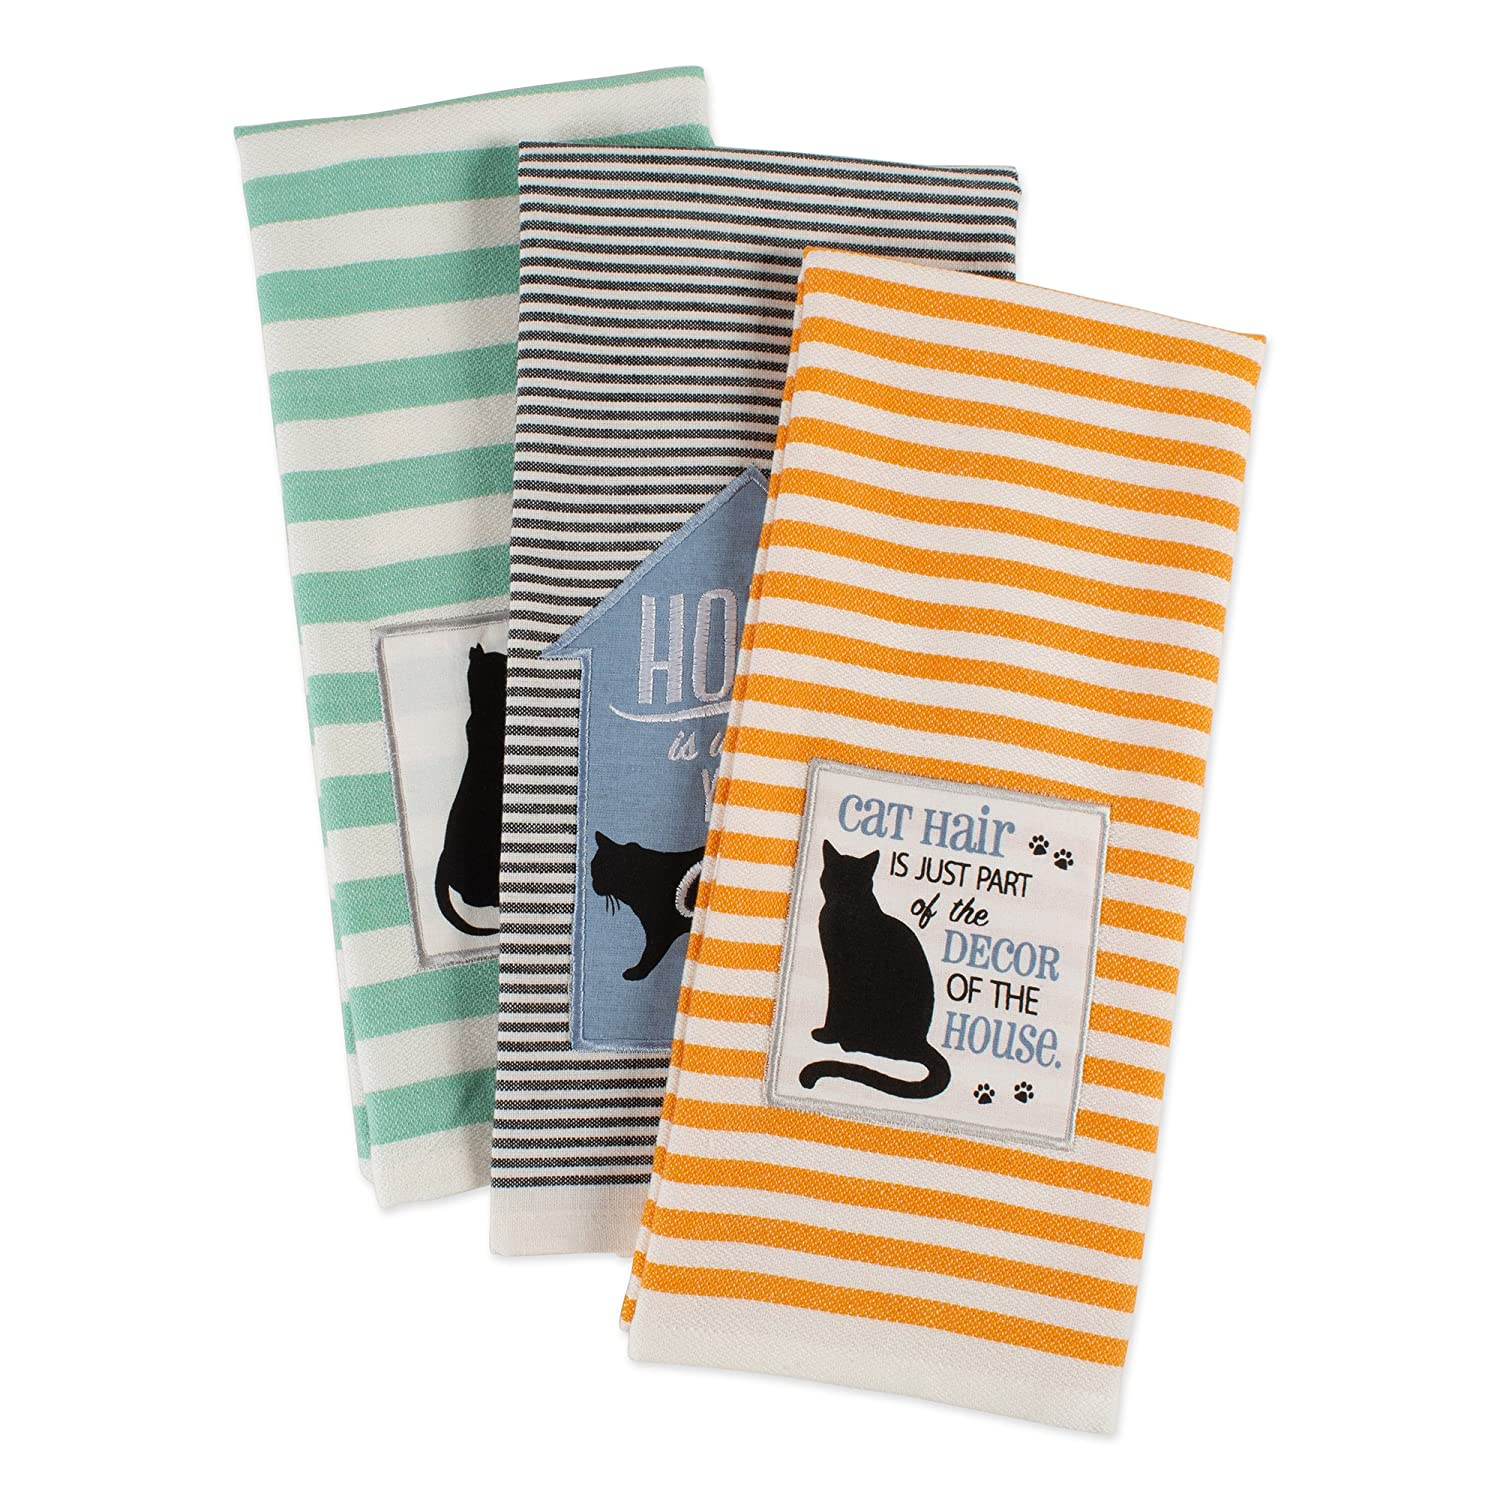 DII Cotton Decorative Pet Lover Dish Towel 18 x 28 Set of 3, Oversized Kitchen Dish Towels, Perfect Mother's Day, Hostess, Housewarming Gift-Cat's Meow Perfect Mother's Day CAMZ37436